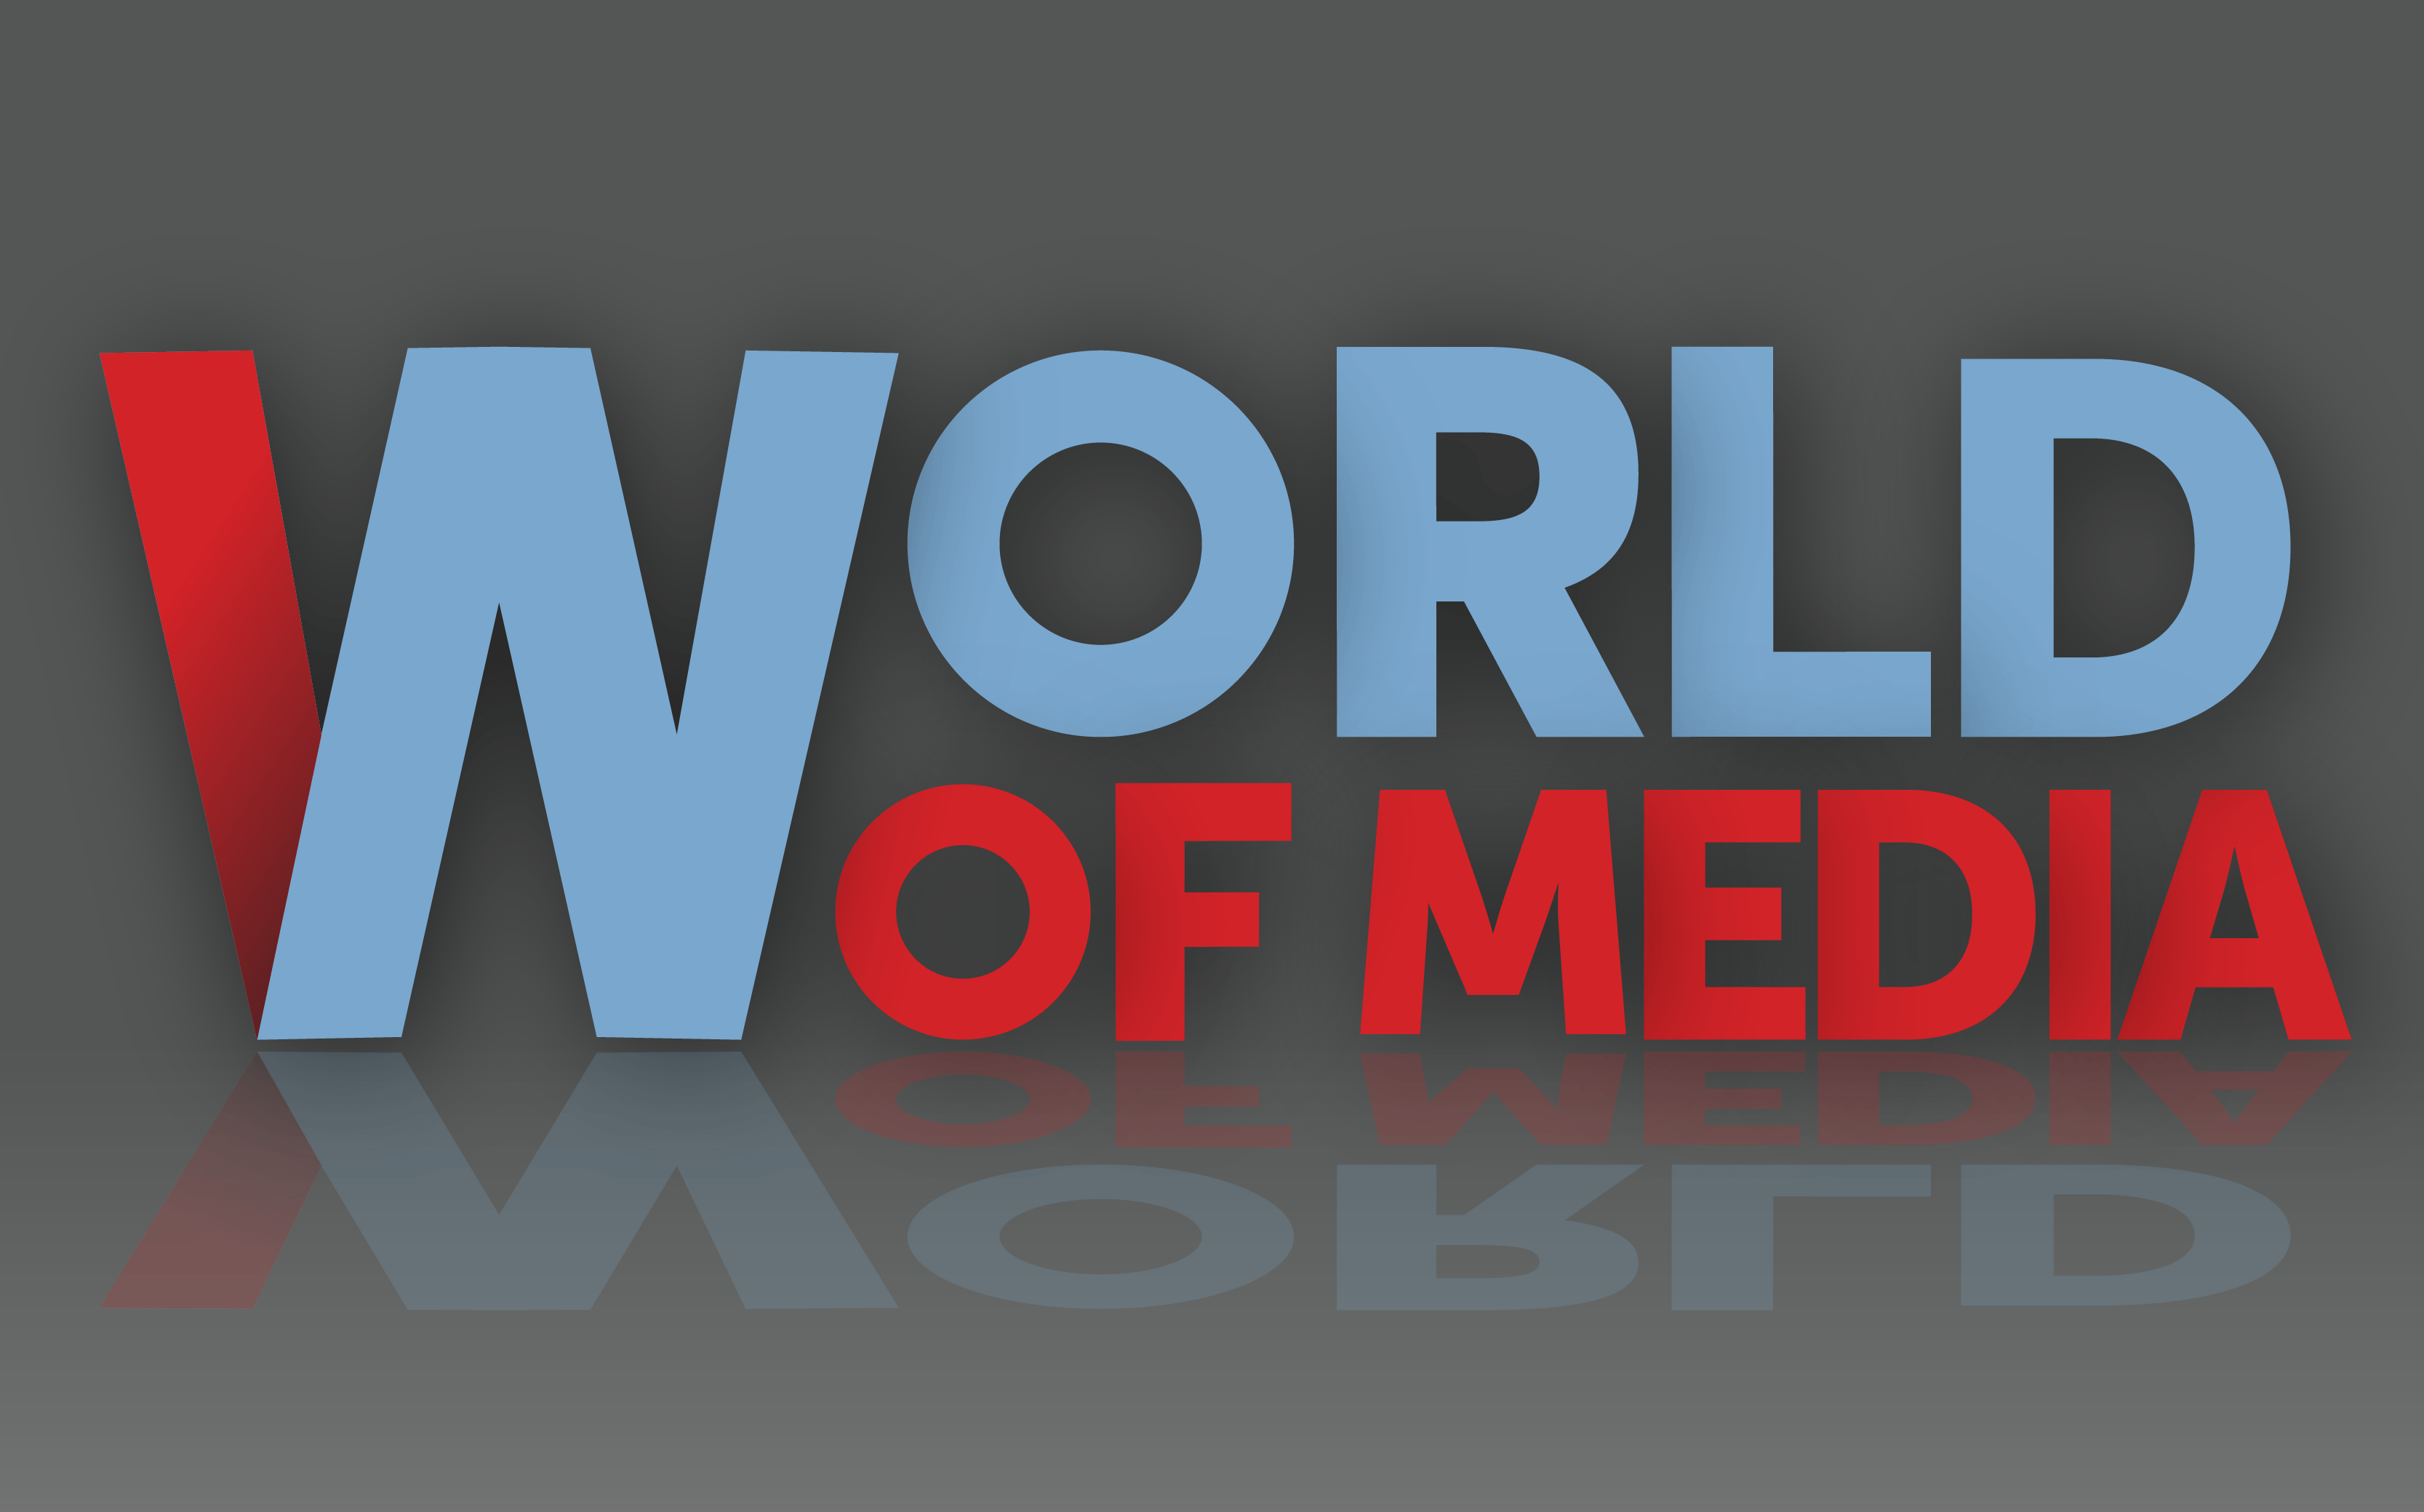 World of Media: LG, Airbnb and Novartis launch global media account reviews, TiVo lauches court case against Comcast, Facebook's $5bn fine